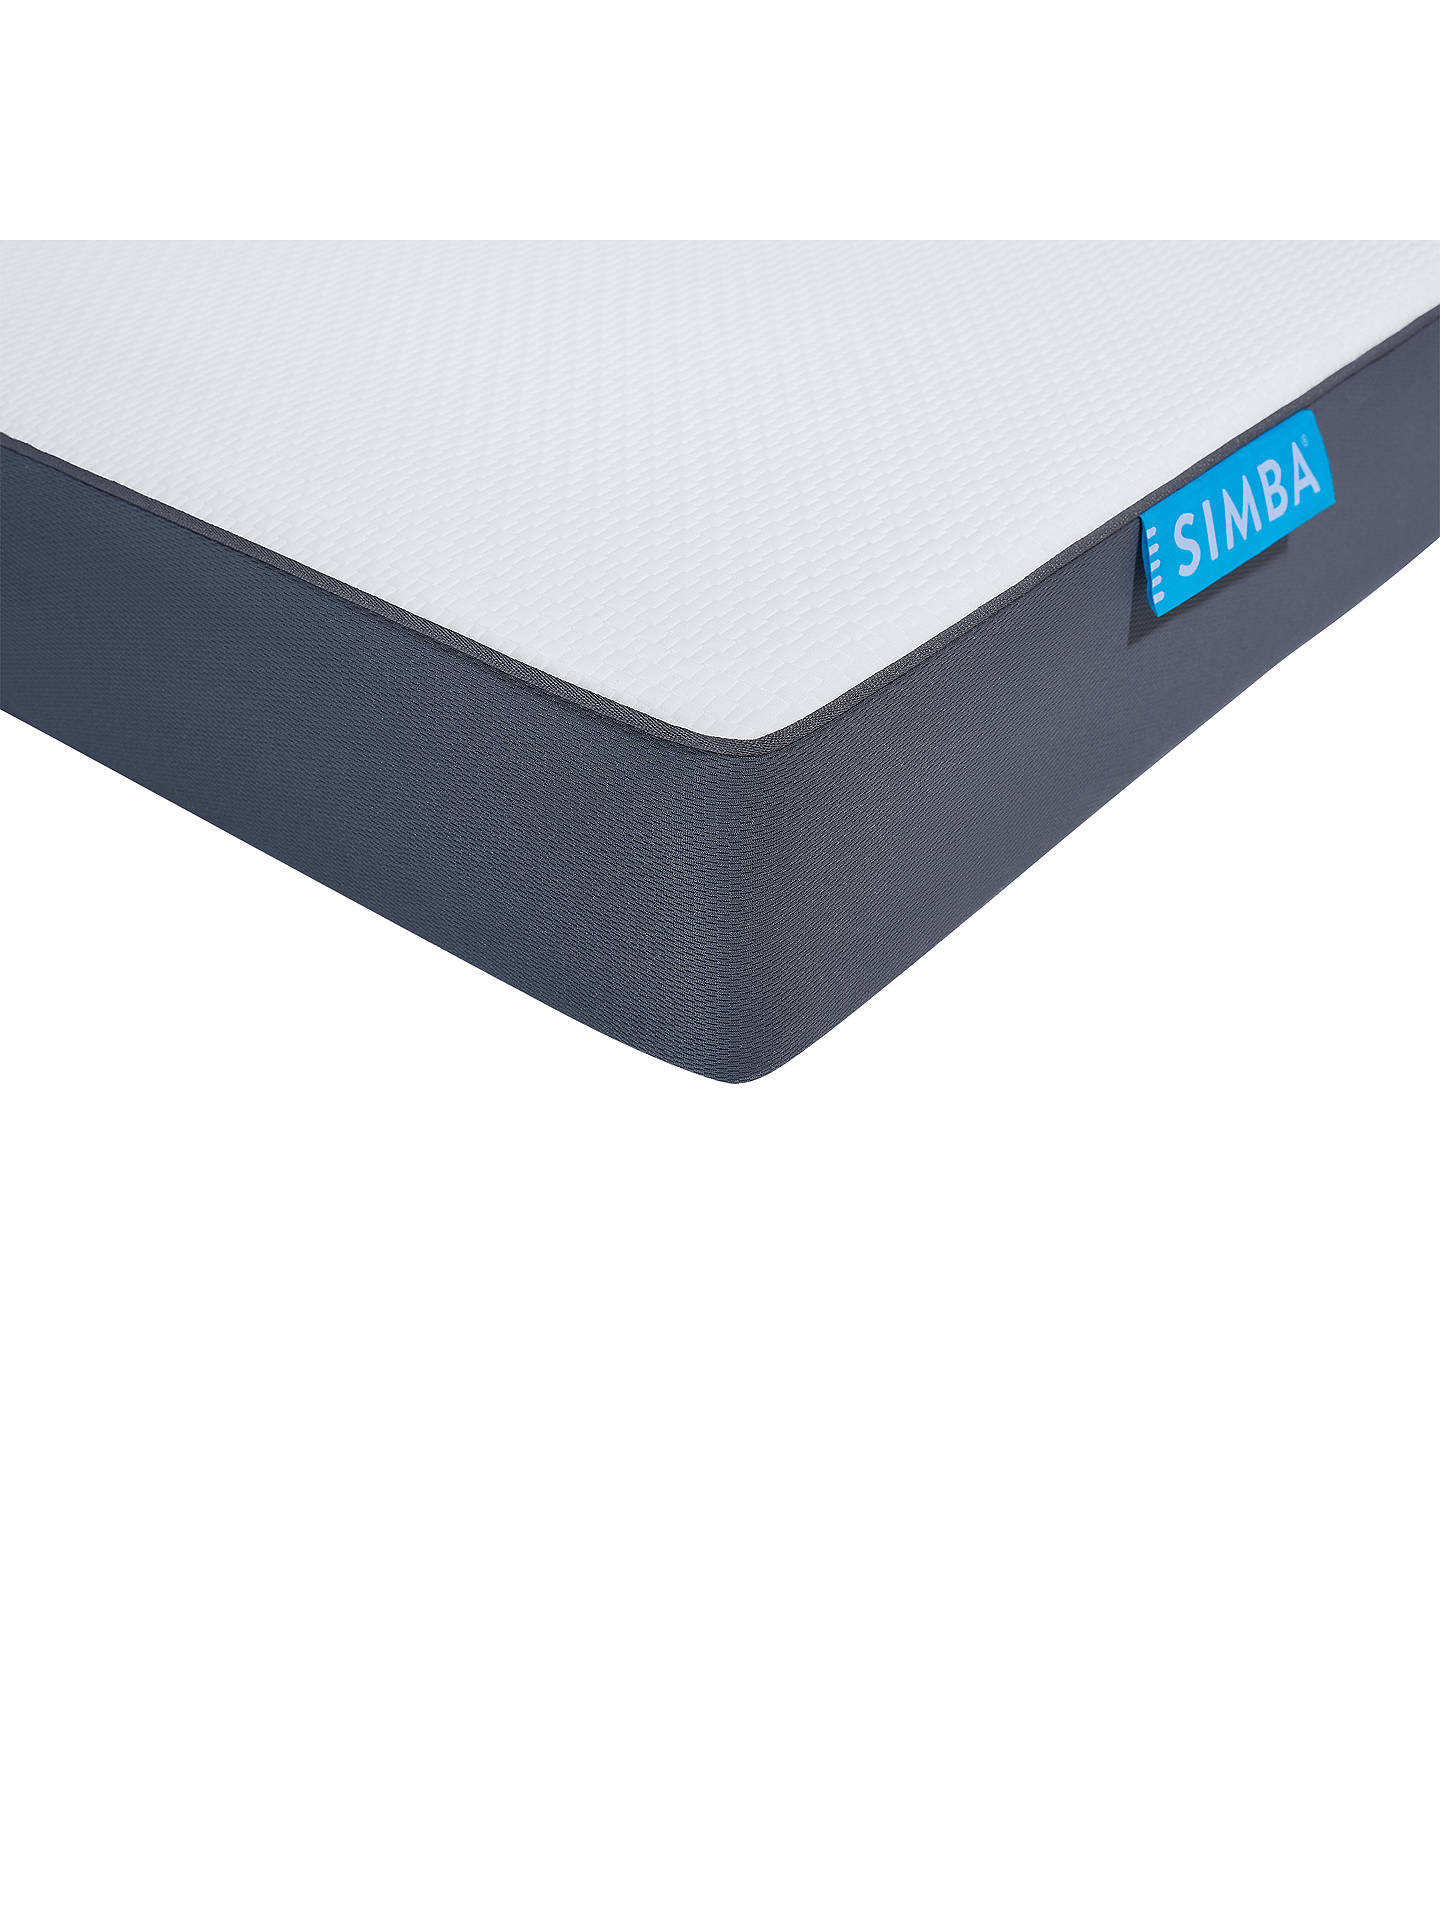 Buy Simba Hybrid® Bunk Bed Pocket Spring Mattress, Medium Tension, Single Online at johnlewis.com